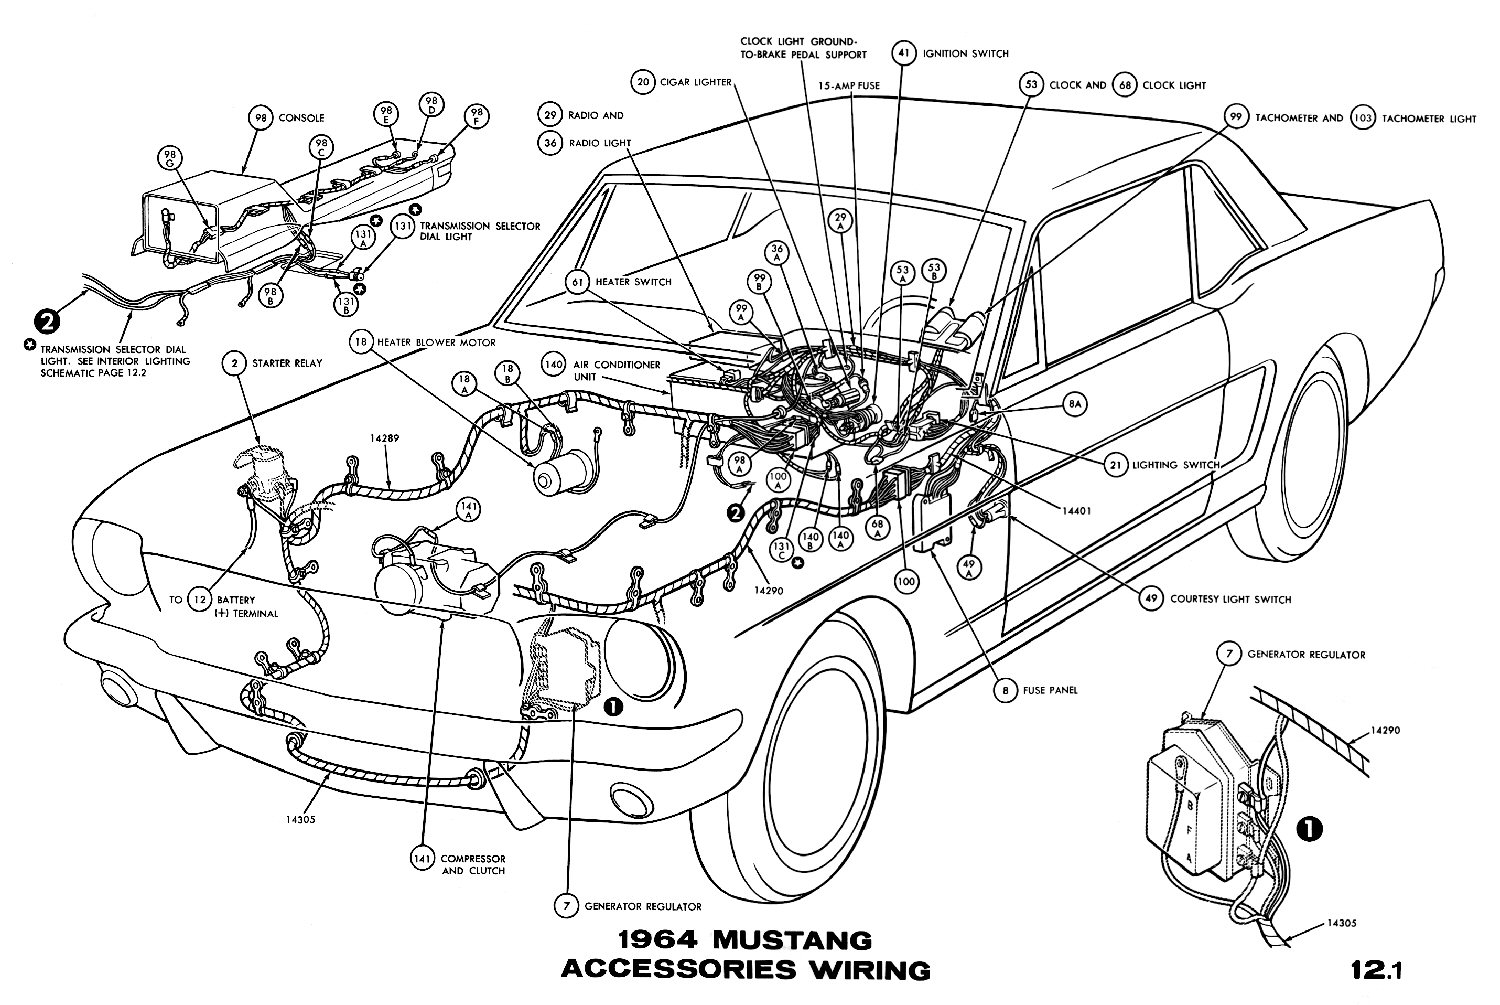 Courtesy Light Wiring Diagram For Mustang